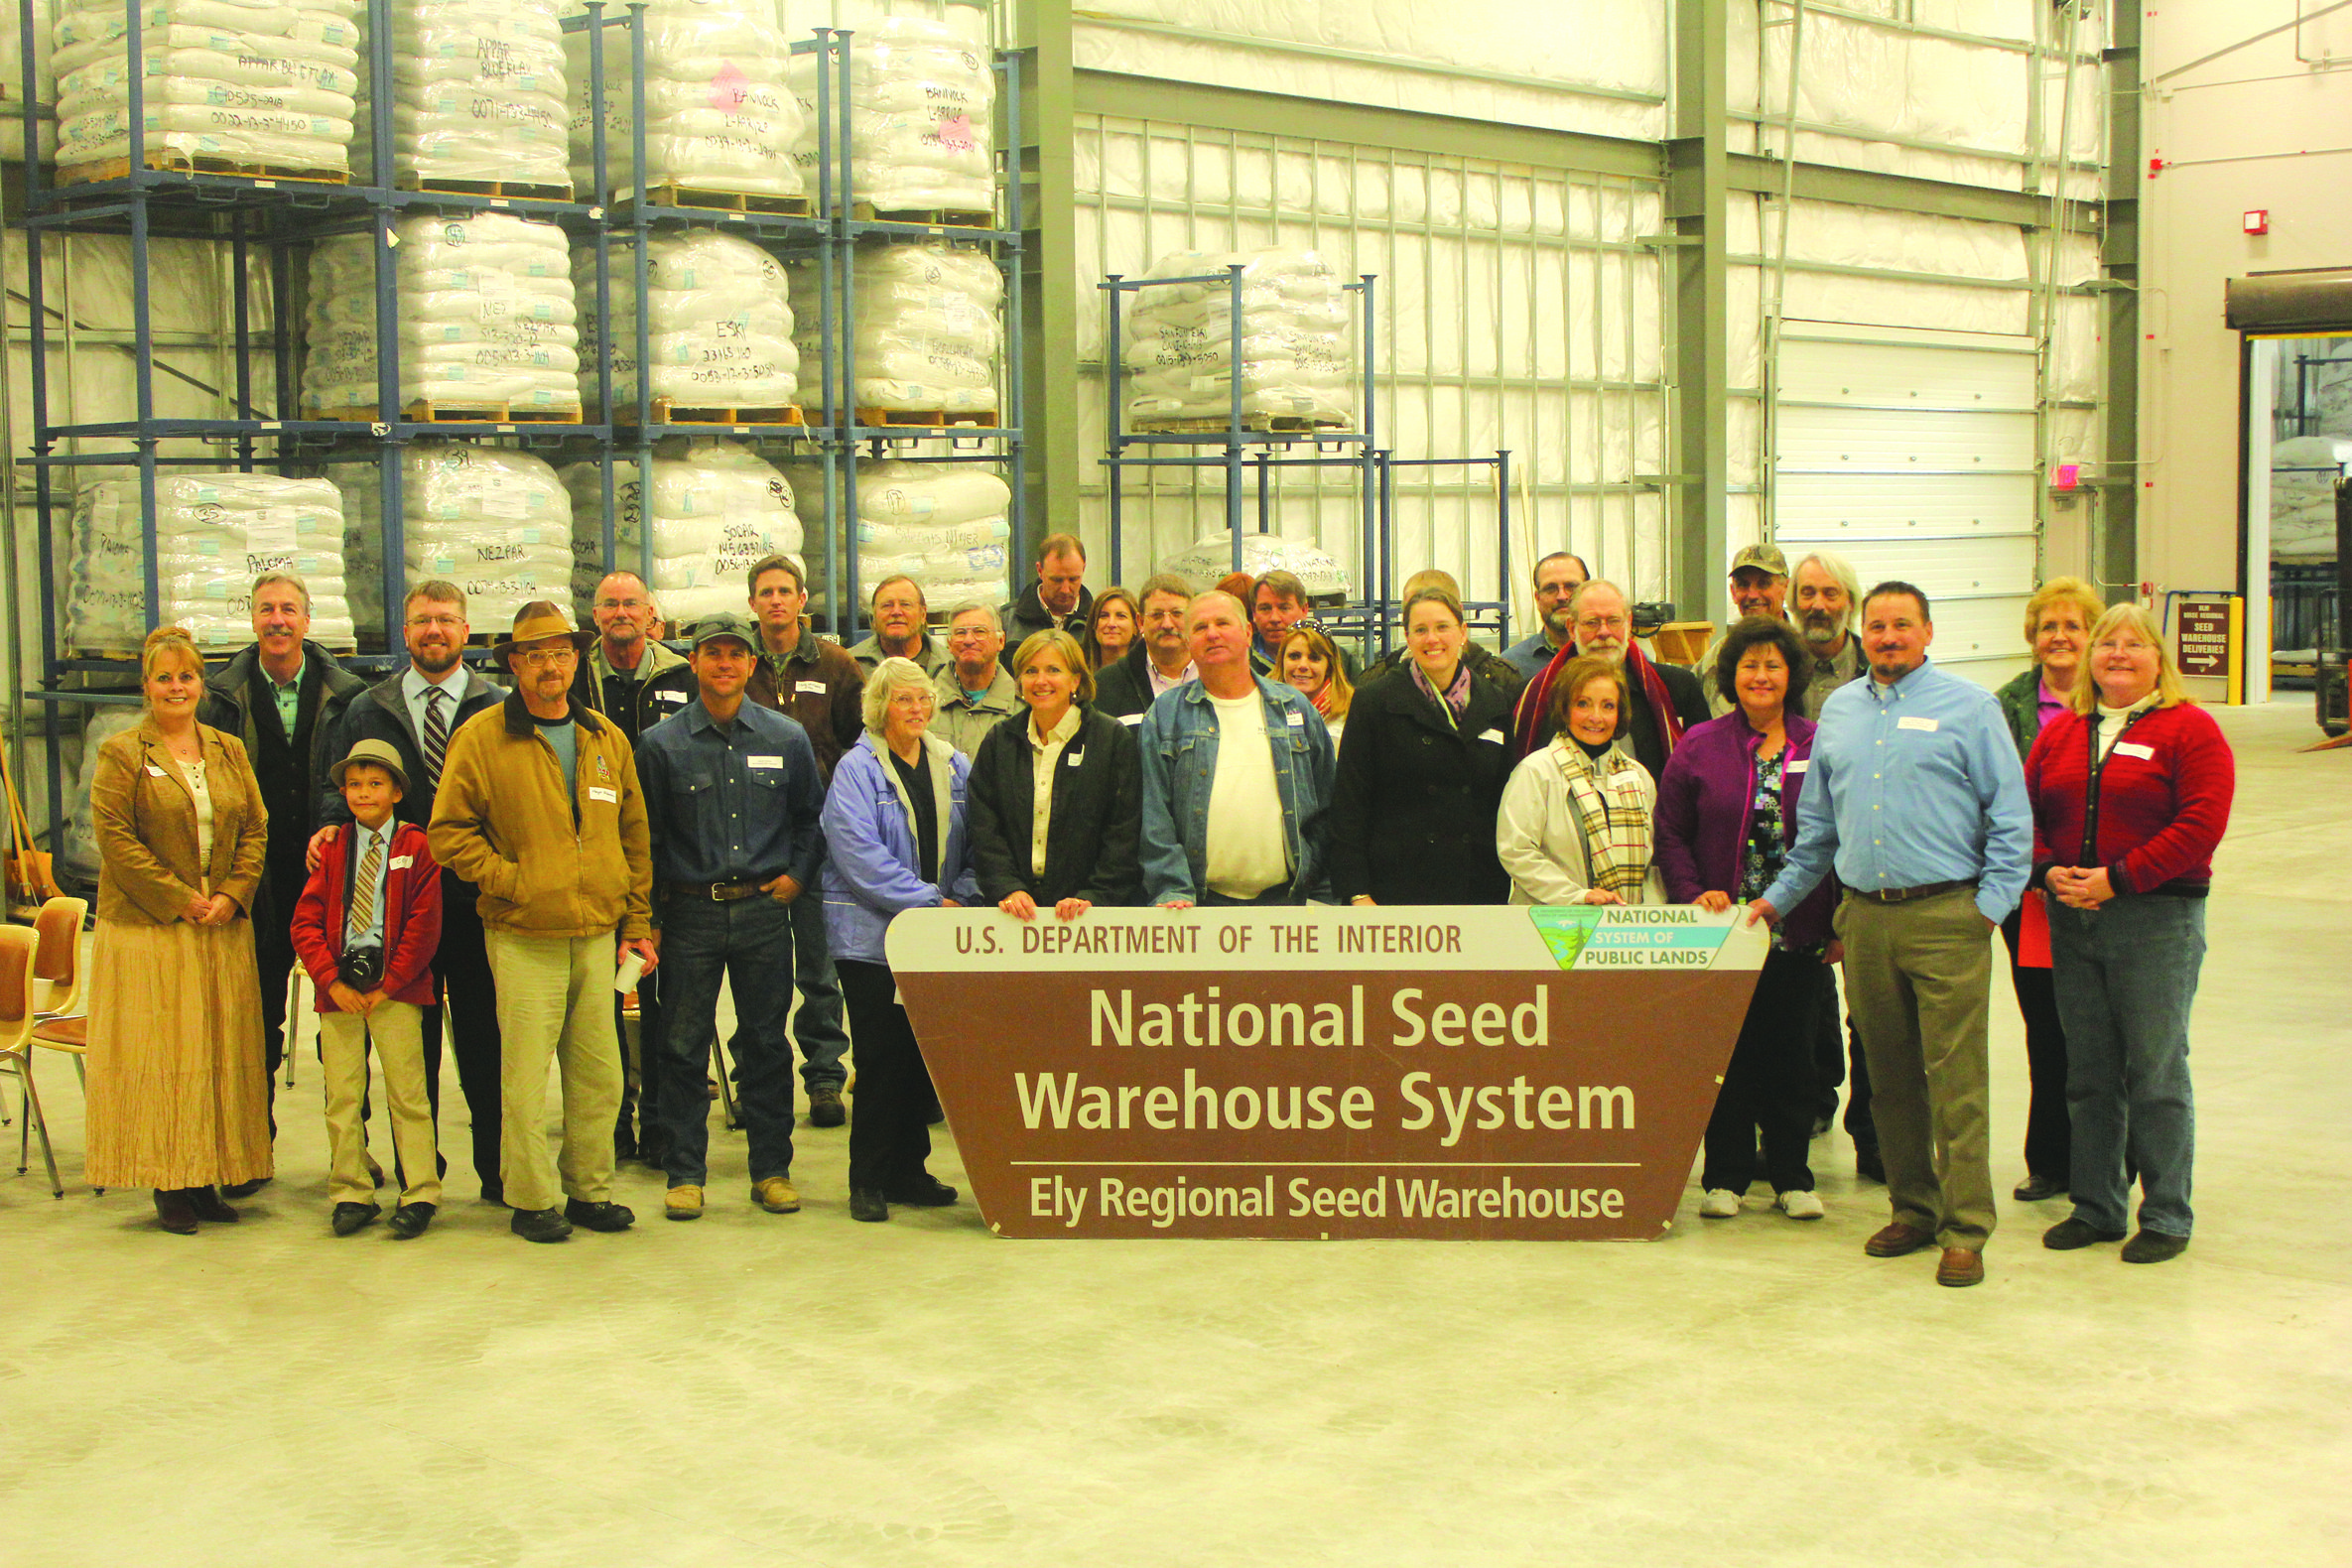 BLM opens new seed warehouse in Ely